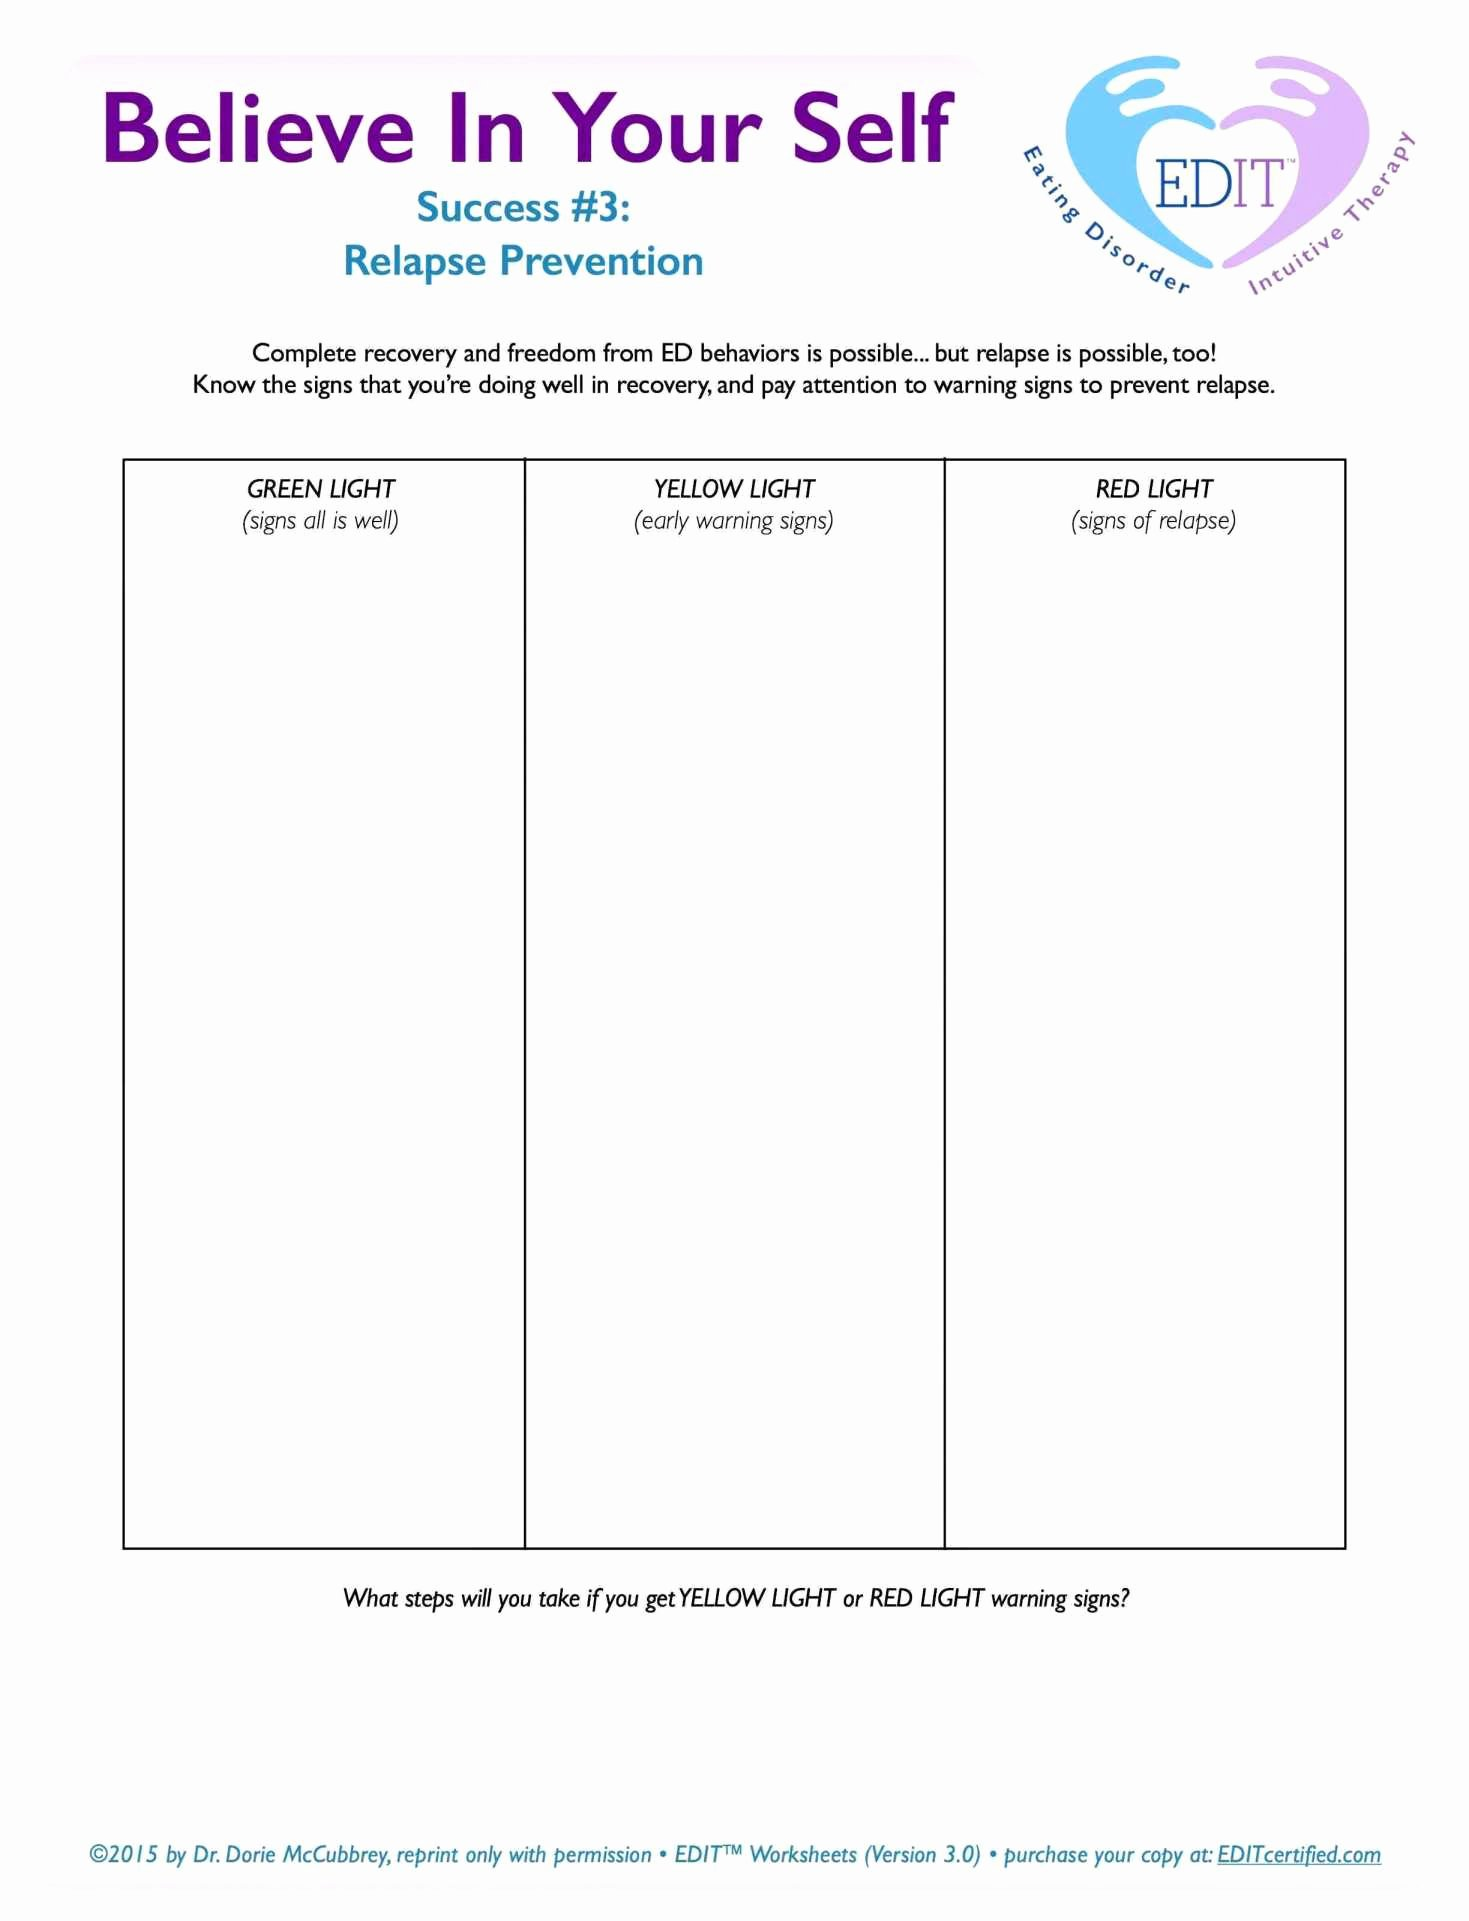 Relapse Prevention Plan Worksheet Template Elegant Tips for Avoiding Relapse Worksheet Relapse Prevention